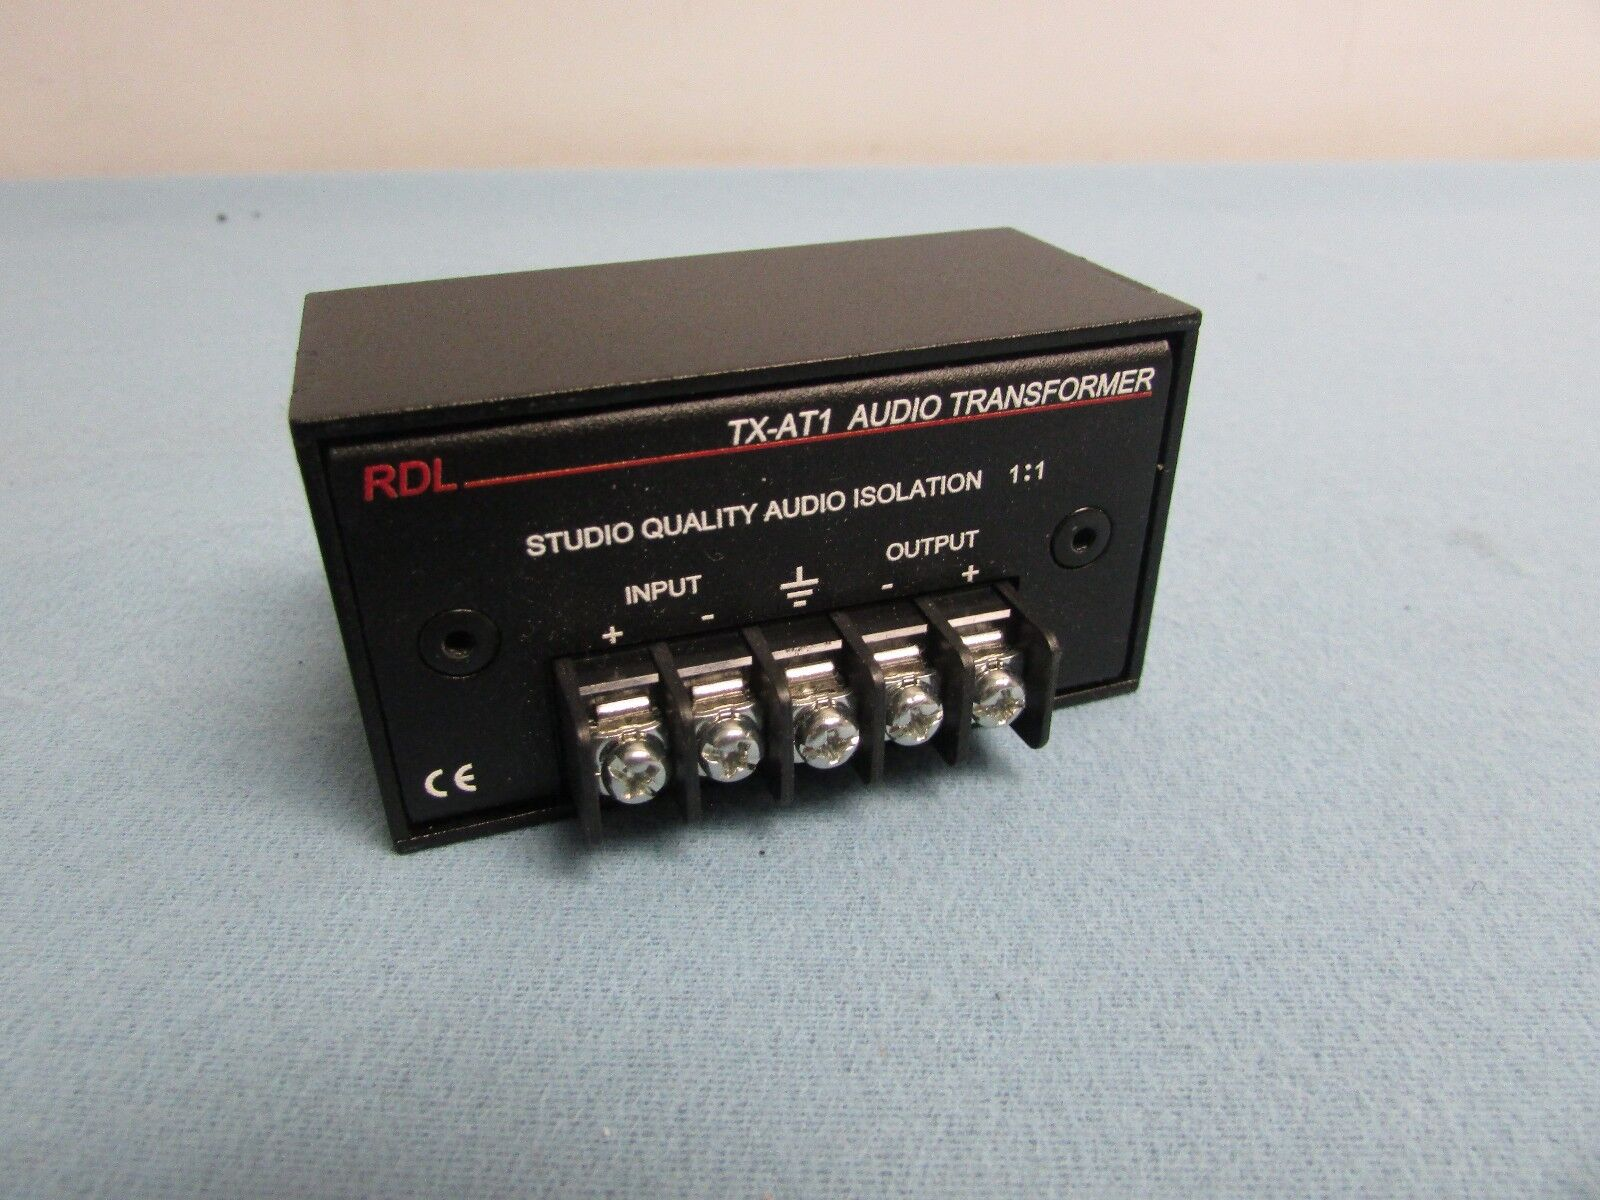 RDL TX-AT1 Audio Transformer (42D)